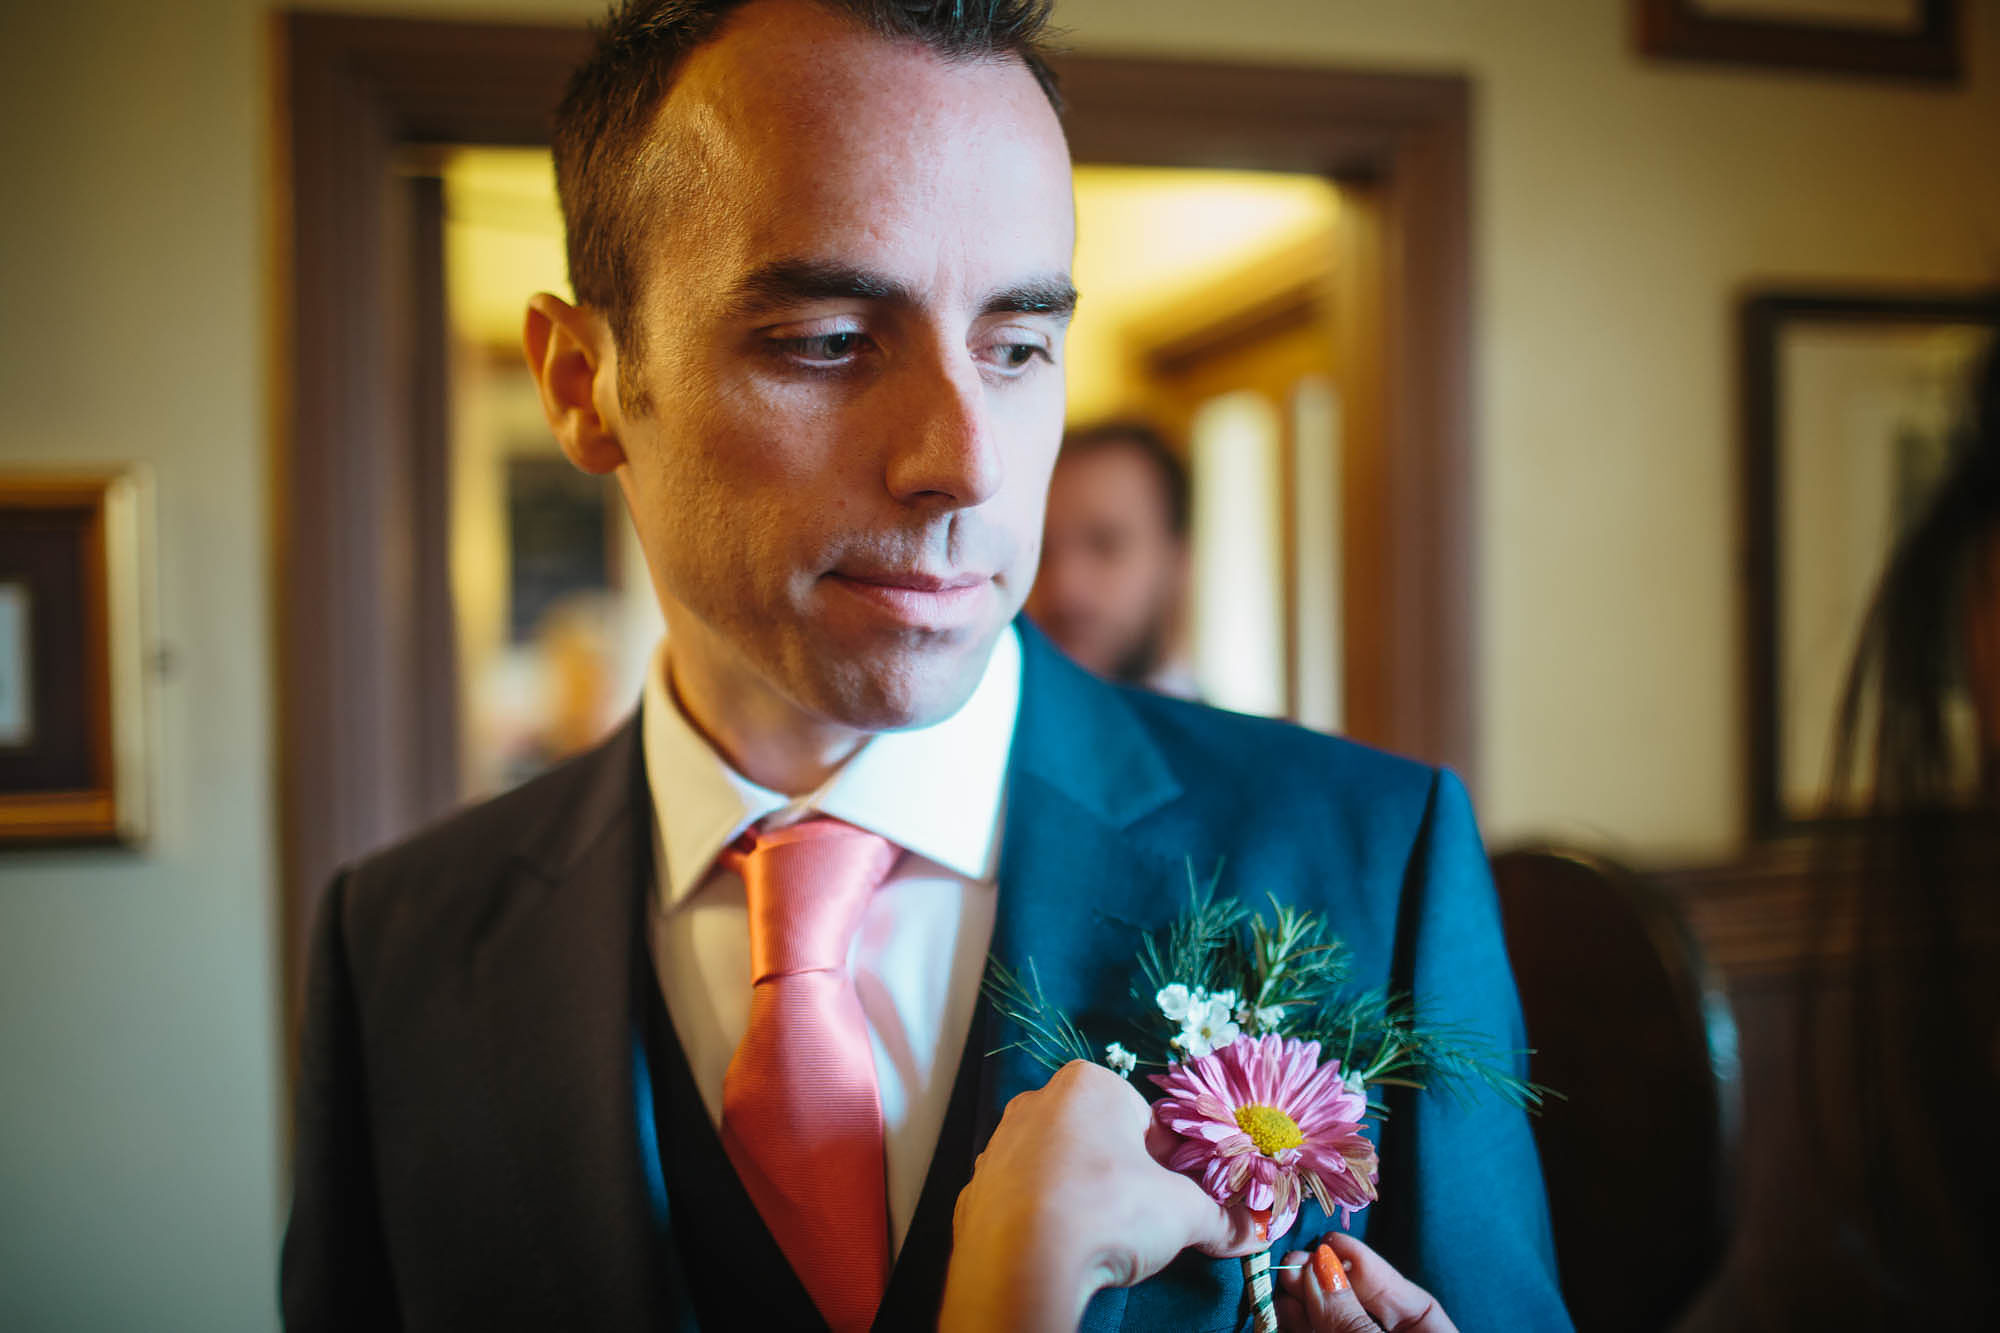 Groom on his wedding day has his buttonhole attached